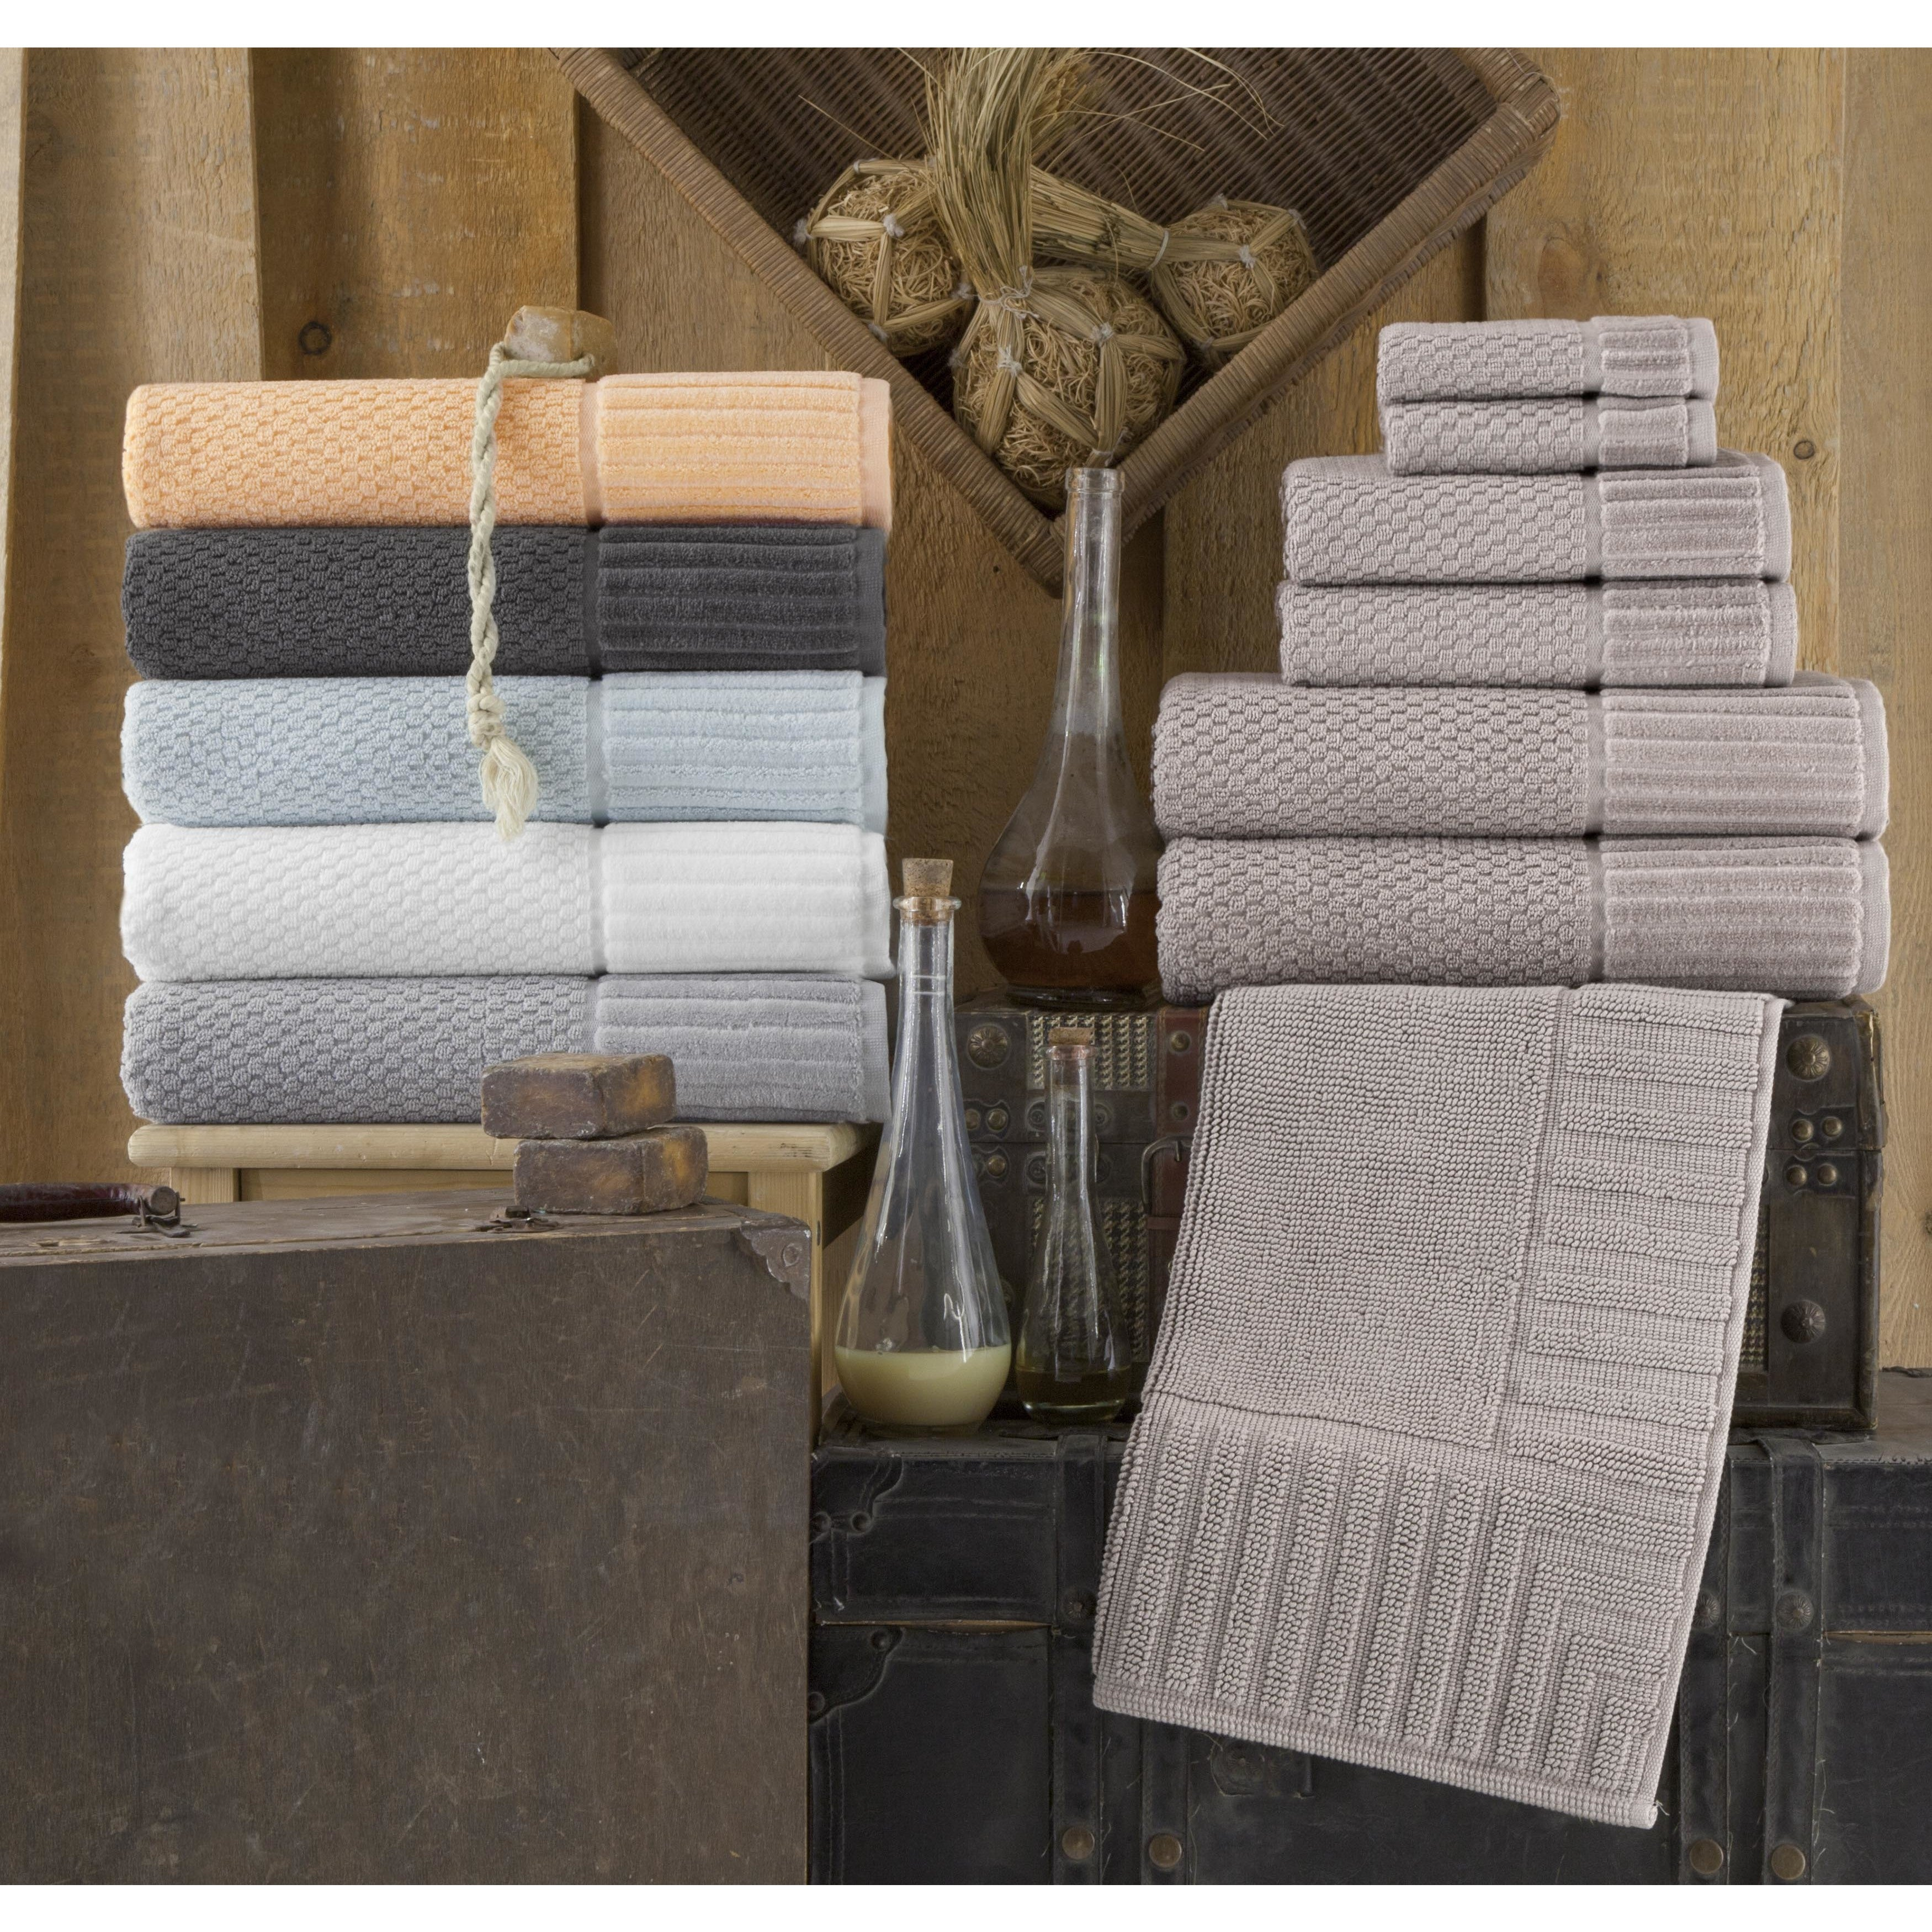 thumbnail 17 - The-Gray-Barn-Scharbauer-Bath-Towels-Set-of-2